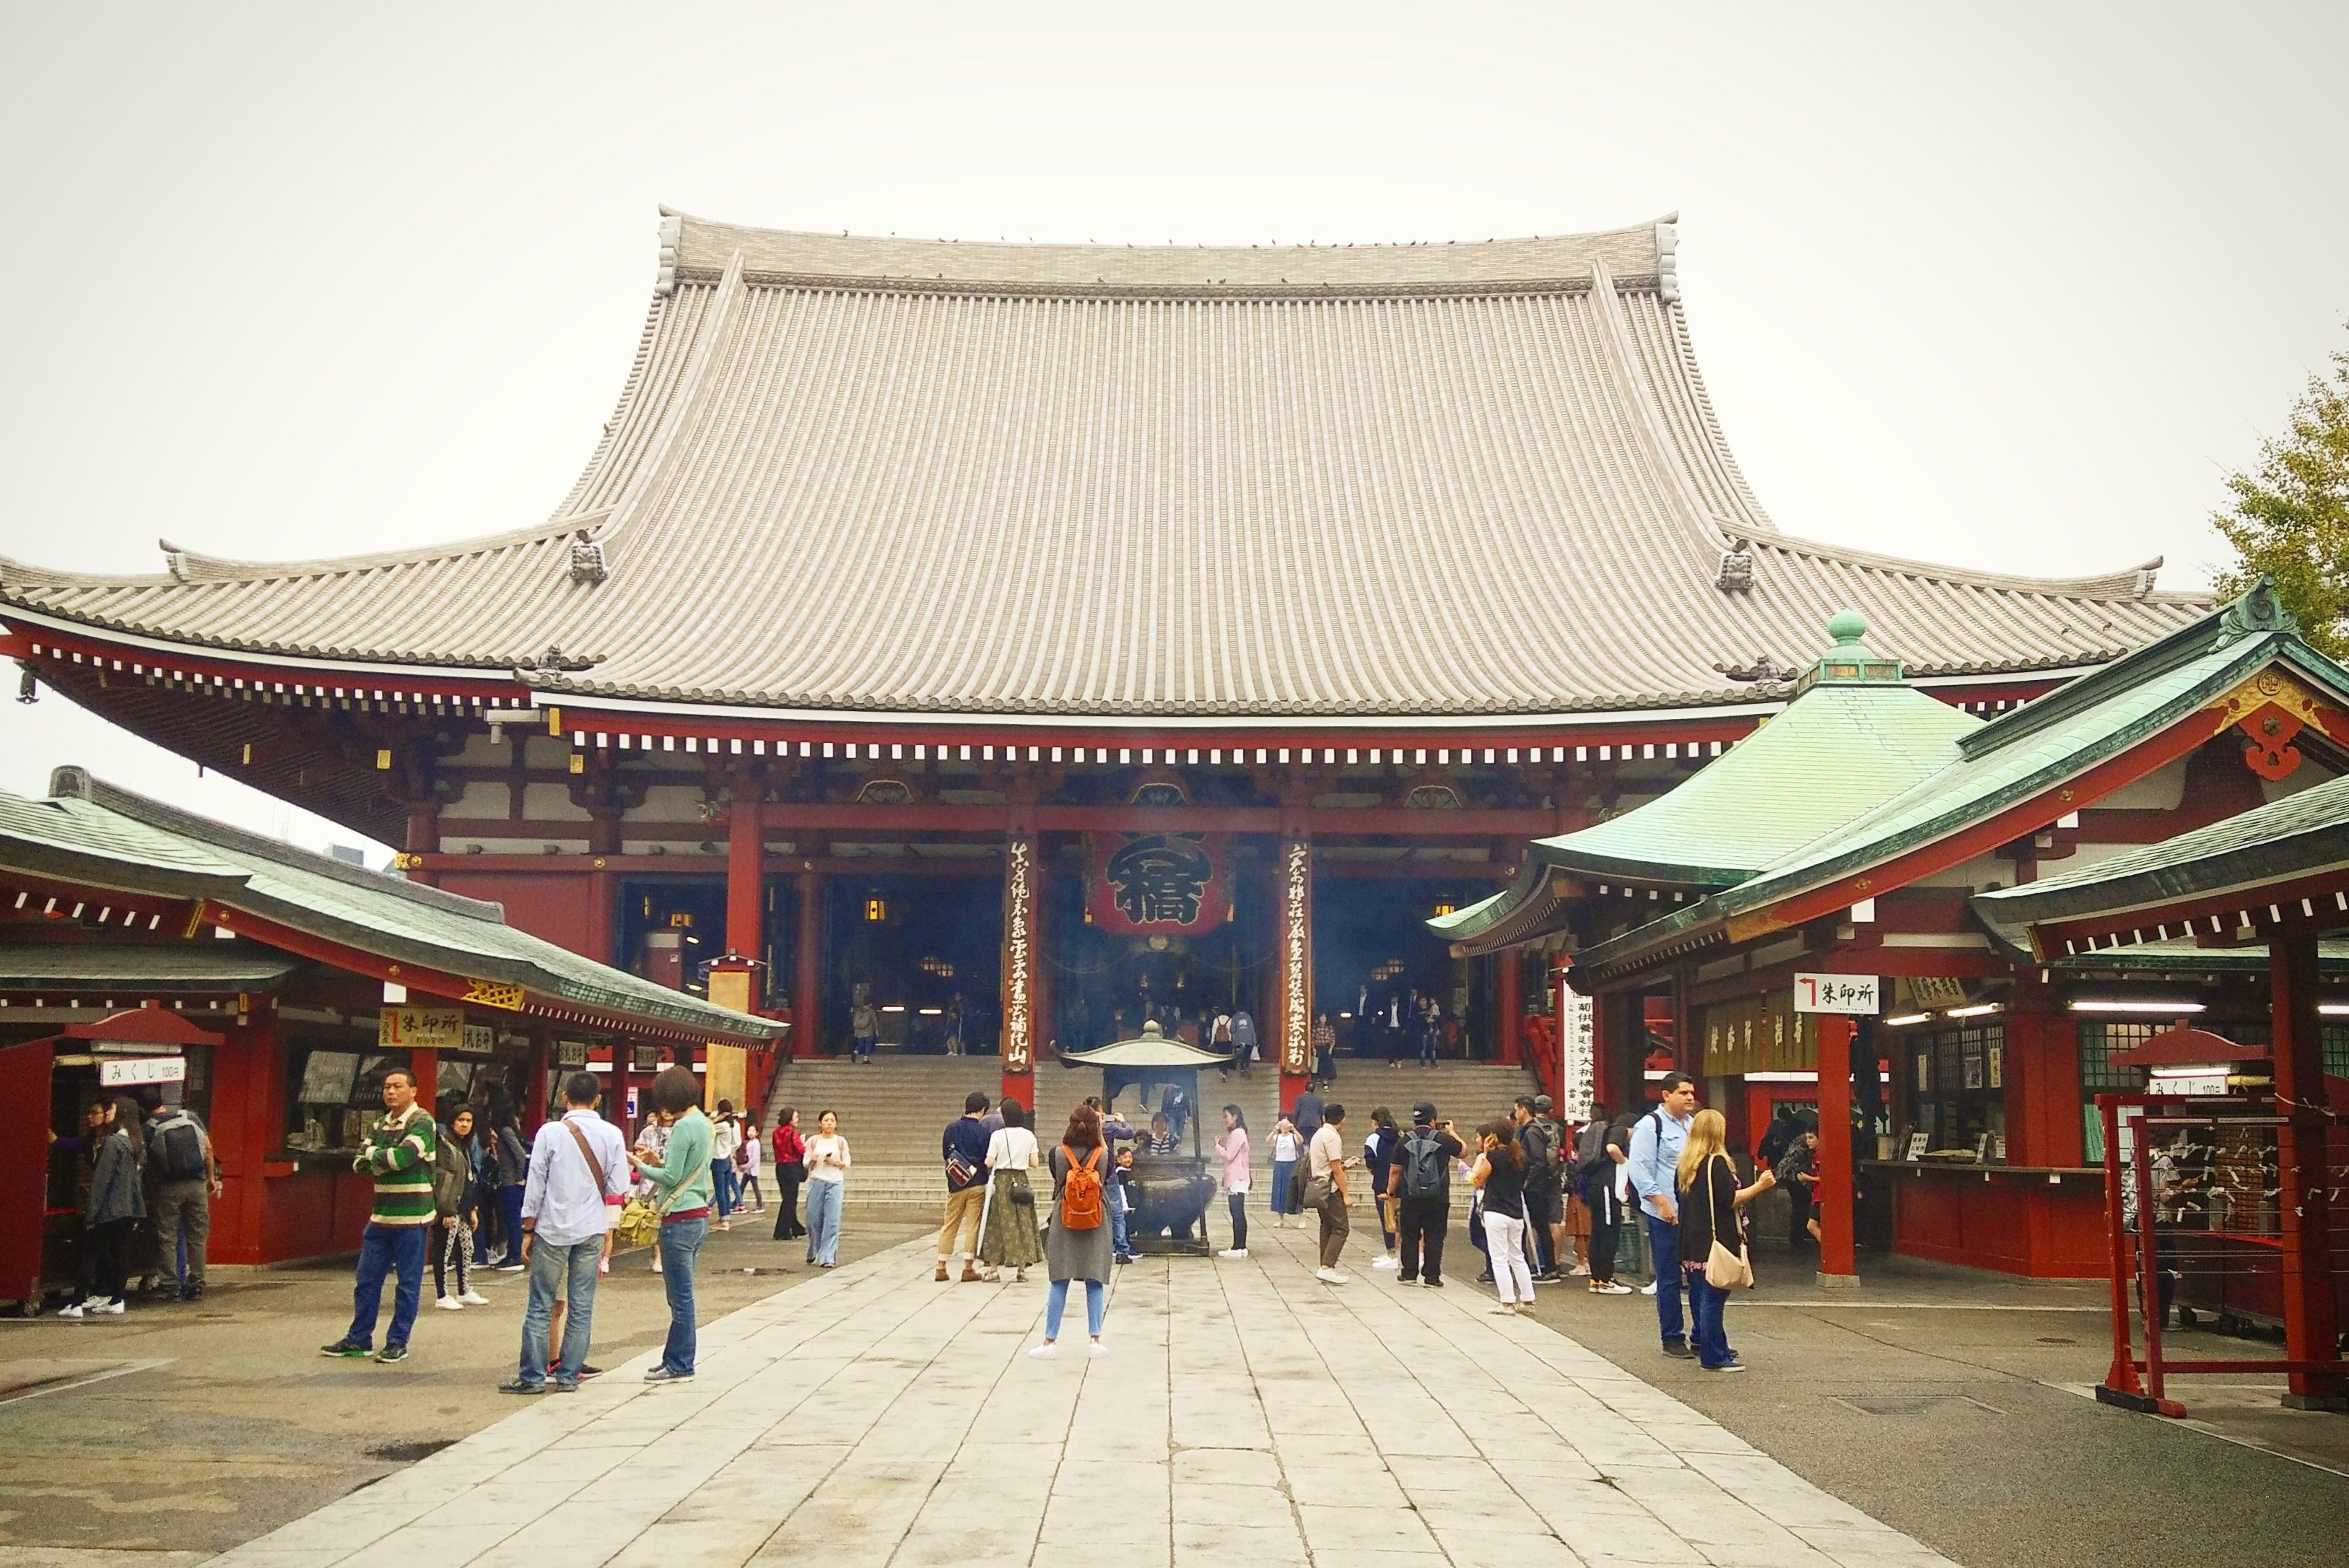 The Asakusa tour: History, traditions and harmony